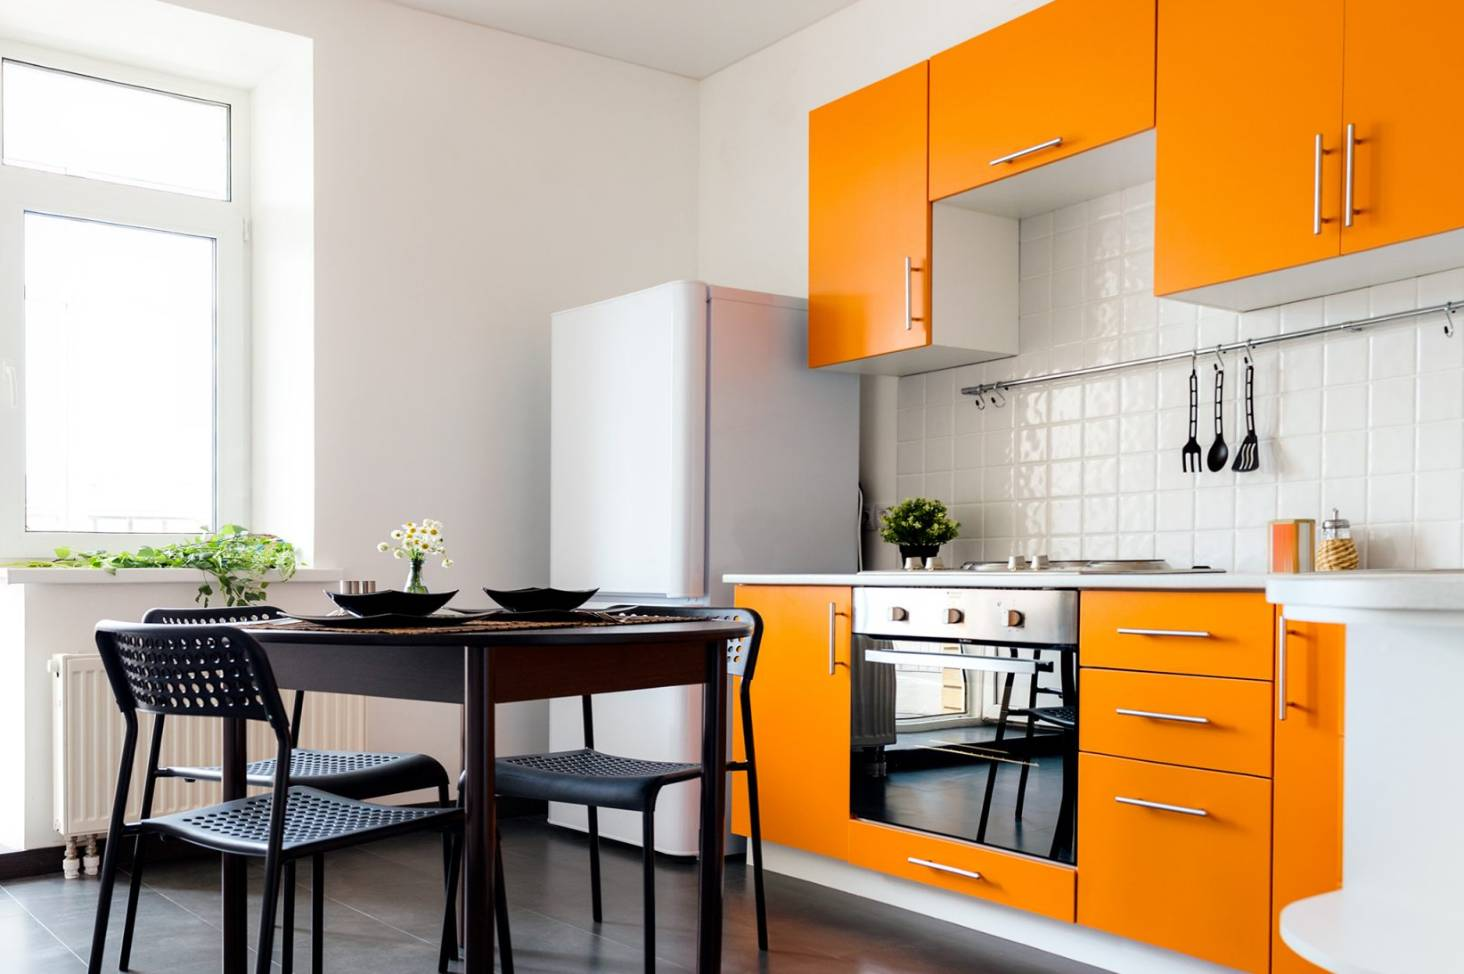 Choosing the right color for your kitchen cabinets can be an overwhelming process. How To Spruce Up Your Kitchen Cabinets On The Cheap Stuff Co Nz